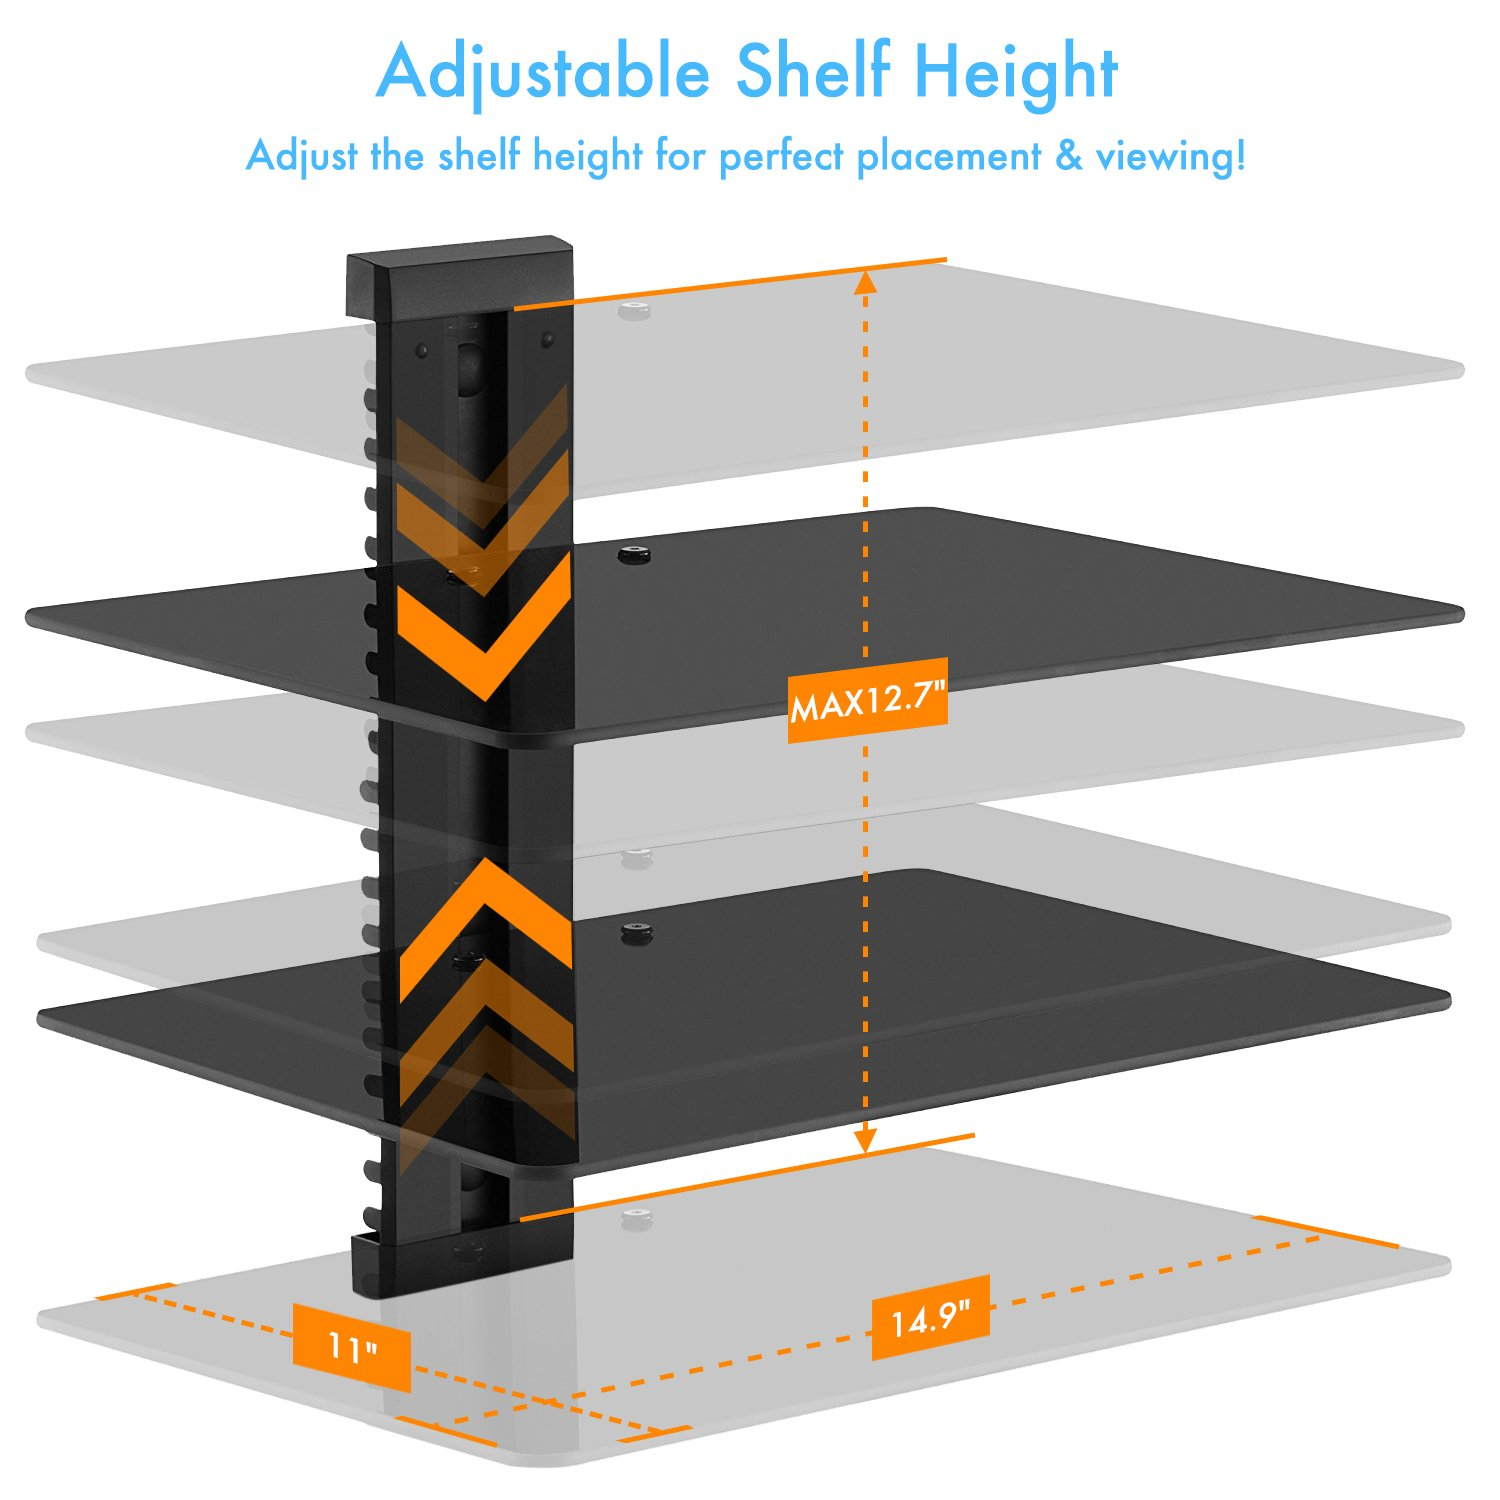 PERLESMITH AV Shelf - Double Floating Wall Mounted Shelf - Holds up to 16.5lbs - DVD DVR Component Shelf with Strengthened Tempered Glass - Perfect for PS4, Xbox One, Xbox 360, TV box and Cable Box